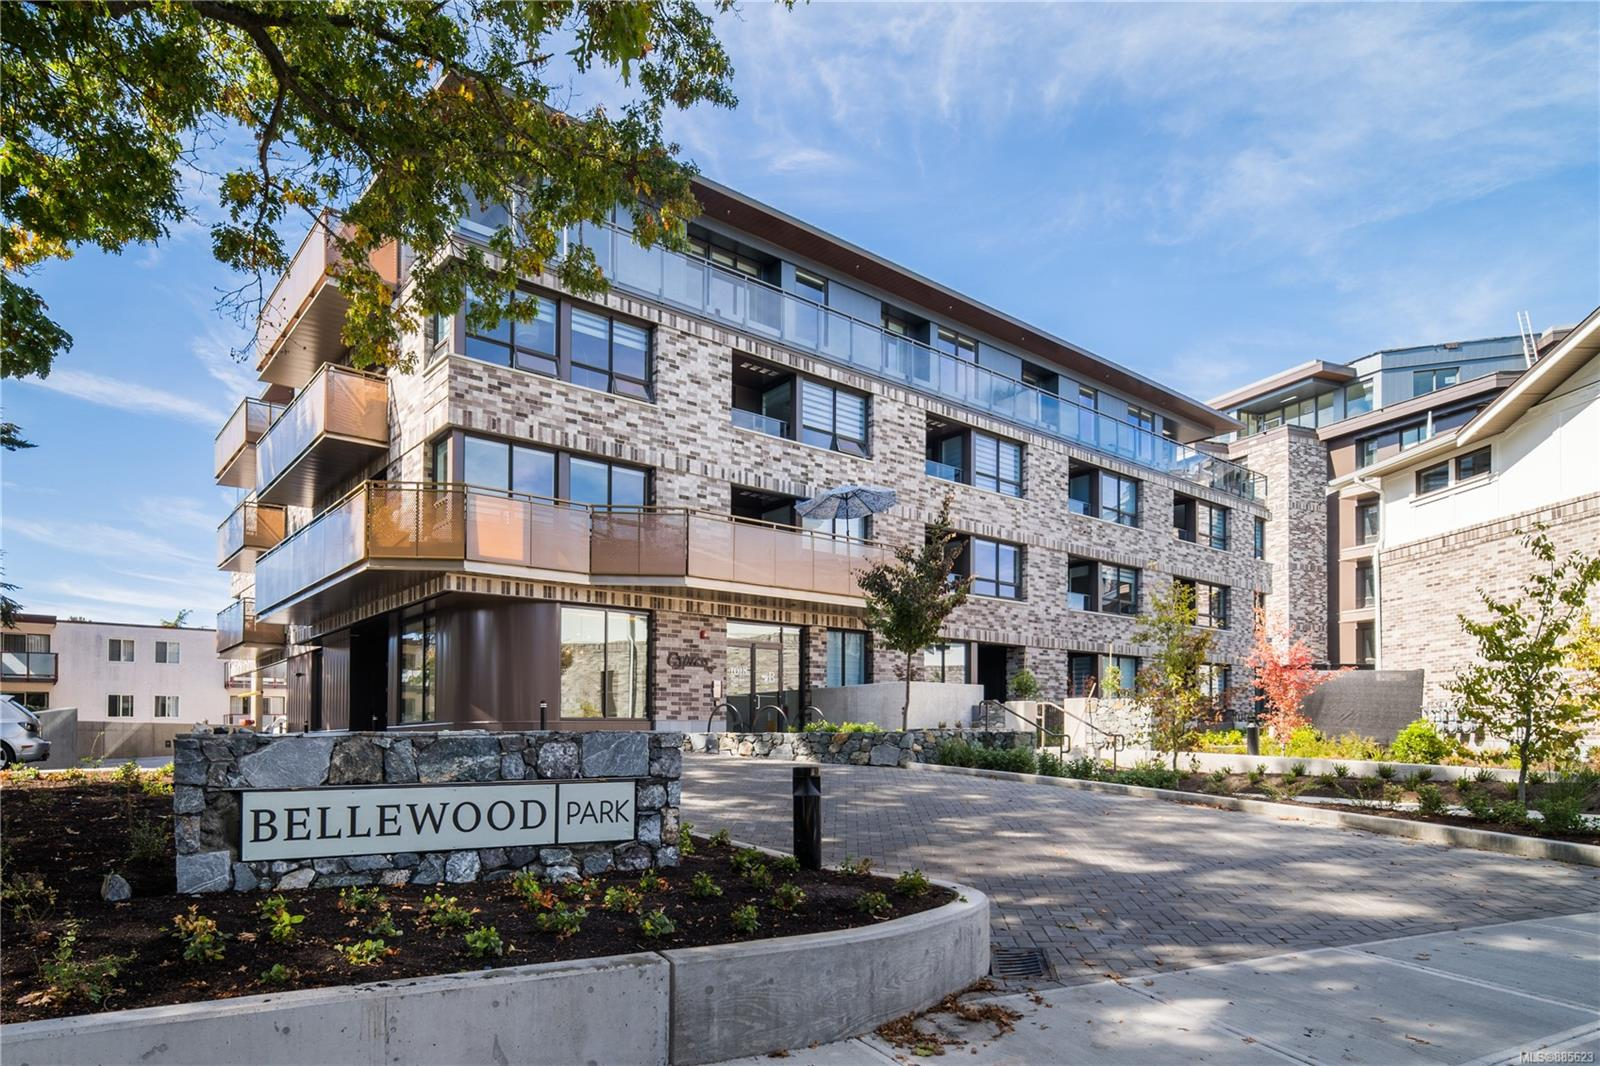 Welcome to the Bellewood Park PH nestled amongst large heritage Garry oaks on 2 acres of parkland in the historic Rockland neighbourhood. This 2 bedroom, 2.5 bathroom top floor corner condo boasts over 1600sqft of living space by award-winning Cascadia Architects & Zebra Design. From the foyer, light floods in from triple-glazed windows into a spacious open floorplan of overheight ceilings, rich wood flooring & light palettes. The chef's kitchen features appliances by Wolf, Fisher-Paykel, and Blomberg, a wine fridge located at the built-in dry bar, & waterfall quartz countertops lightened by the skylights above. Across you'll find the dining and living space with a large cascading wall unit with gas fireplace and TV. Both spacious bedrooms feature ensuites with heated flooring and walk-in closets. This suite also includes extra office space and powder room for guests. Step out onto the wrap-around balcony and enjoy unobstructed views of sunsets. 3 PARKING SPACES INCLUDED.